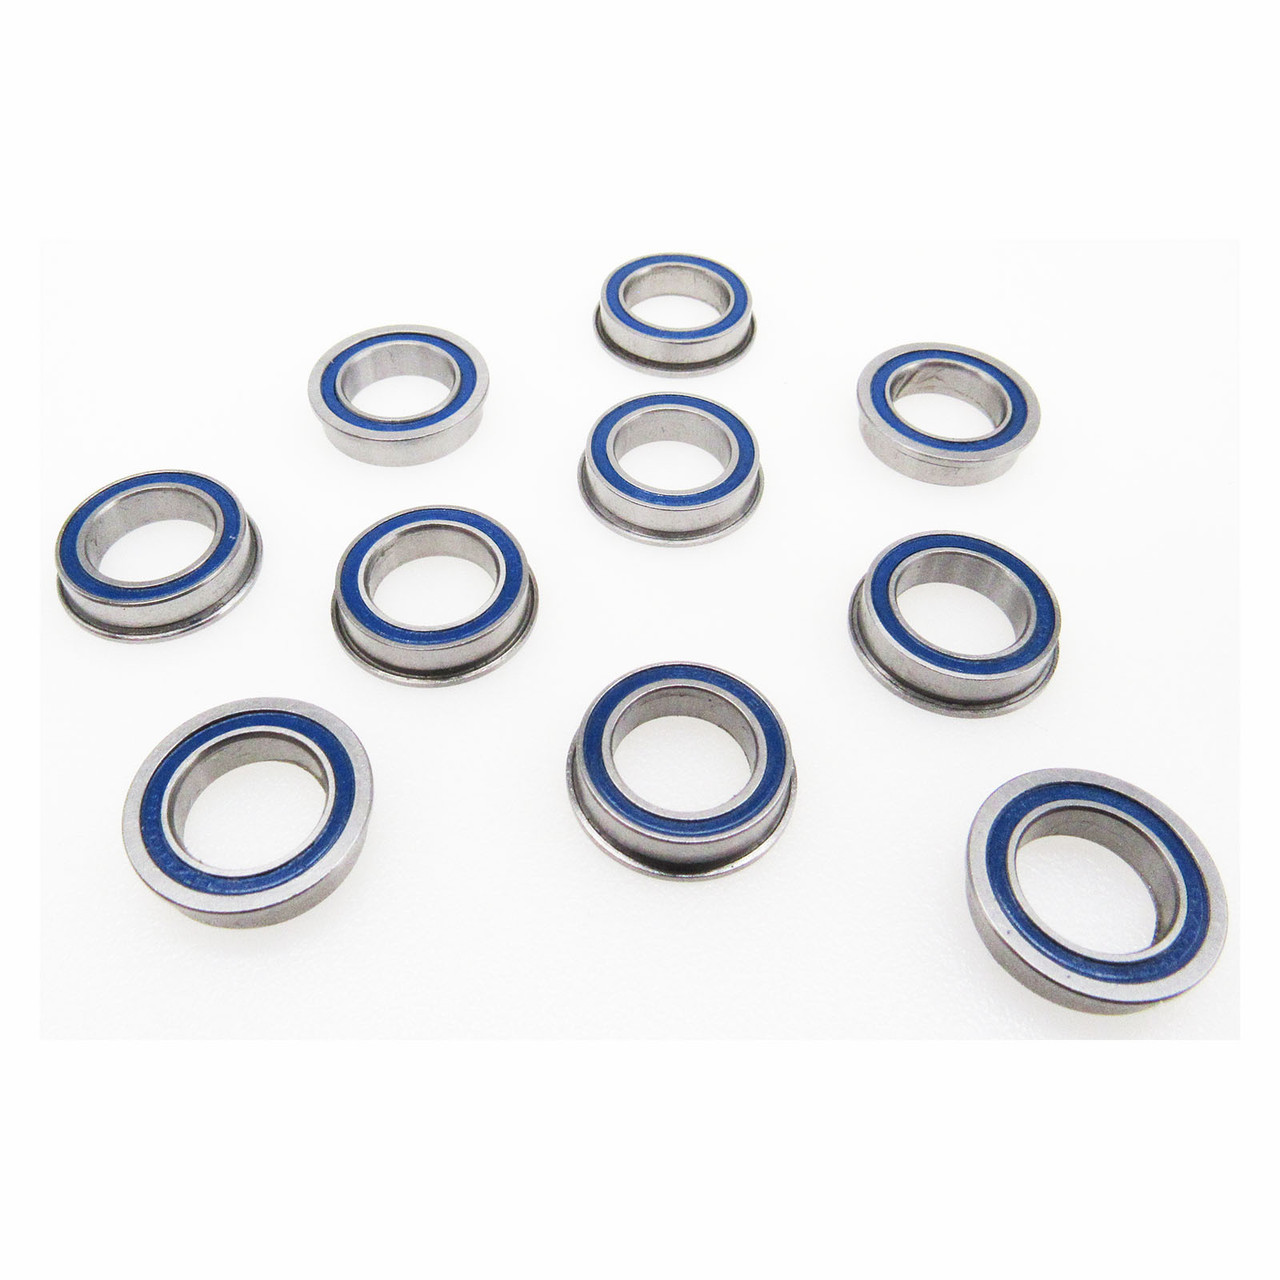 TRB RC 10x15x4mm Flange Precision Ball Bearings Rubber Sealed Blue (10)